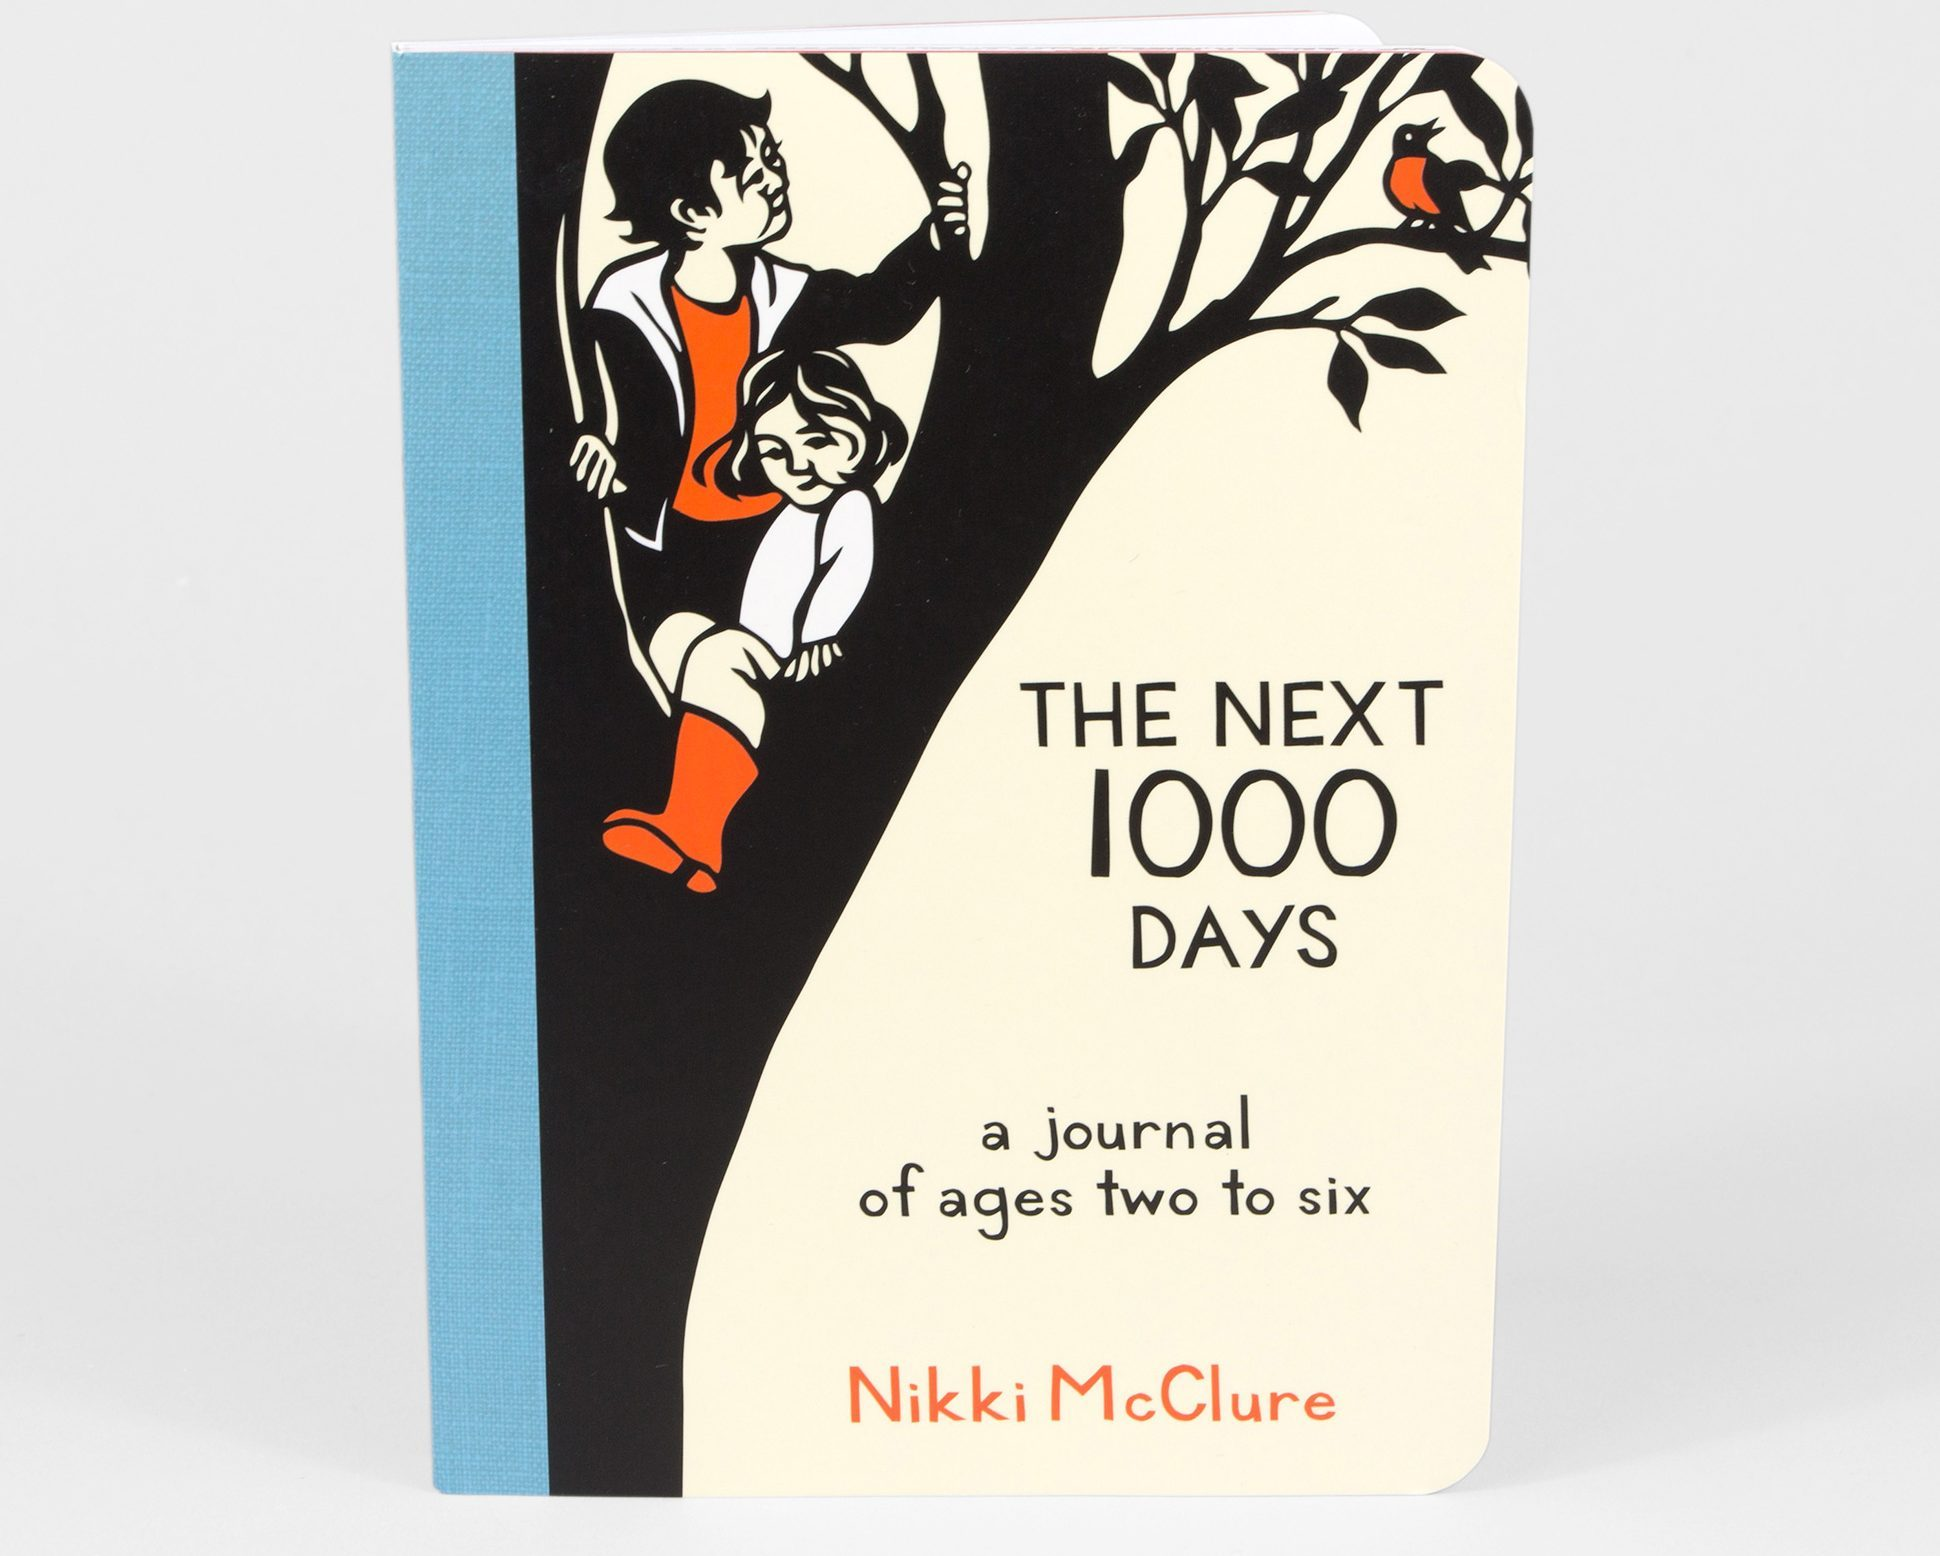 Nikki McClure - The Next 1000 Days, journal